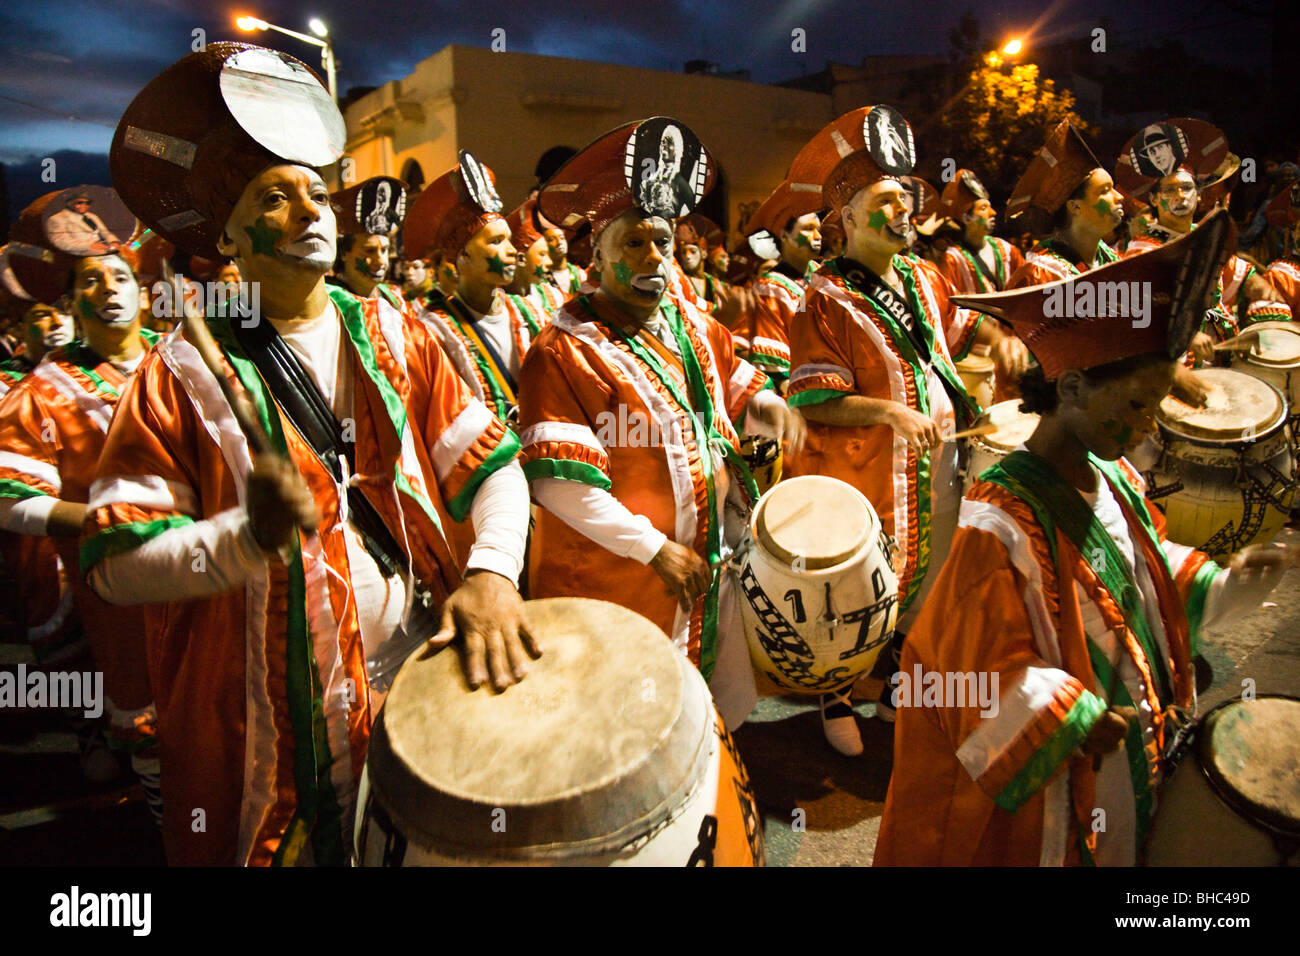 A drum battery performs in the parade of Llamadas during Carnaval in Montevideo, Uruguay. - Stock Image